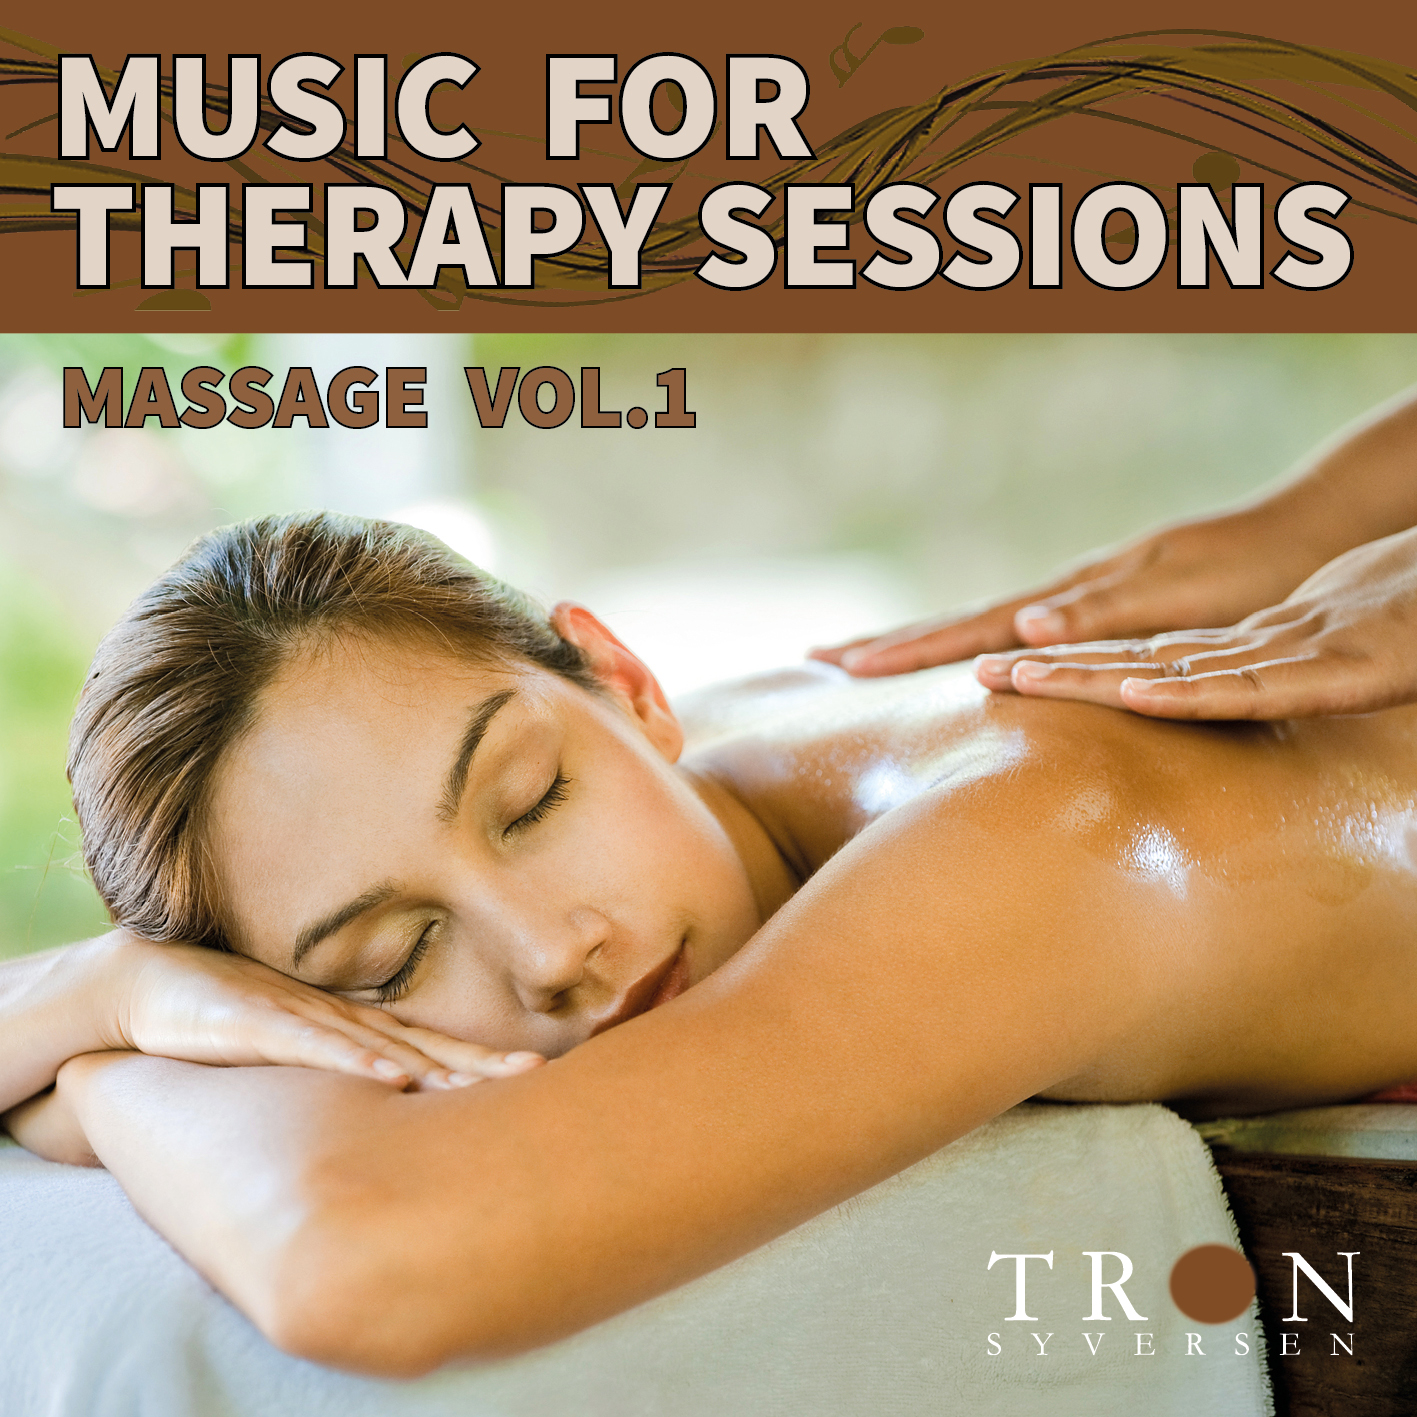 MUSIC FOR THERAPY SESSIONS - MASSAGE VOL 1 - DIGITAL DOWNLOAD